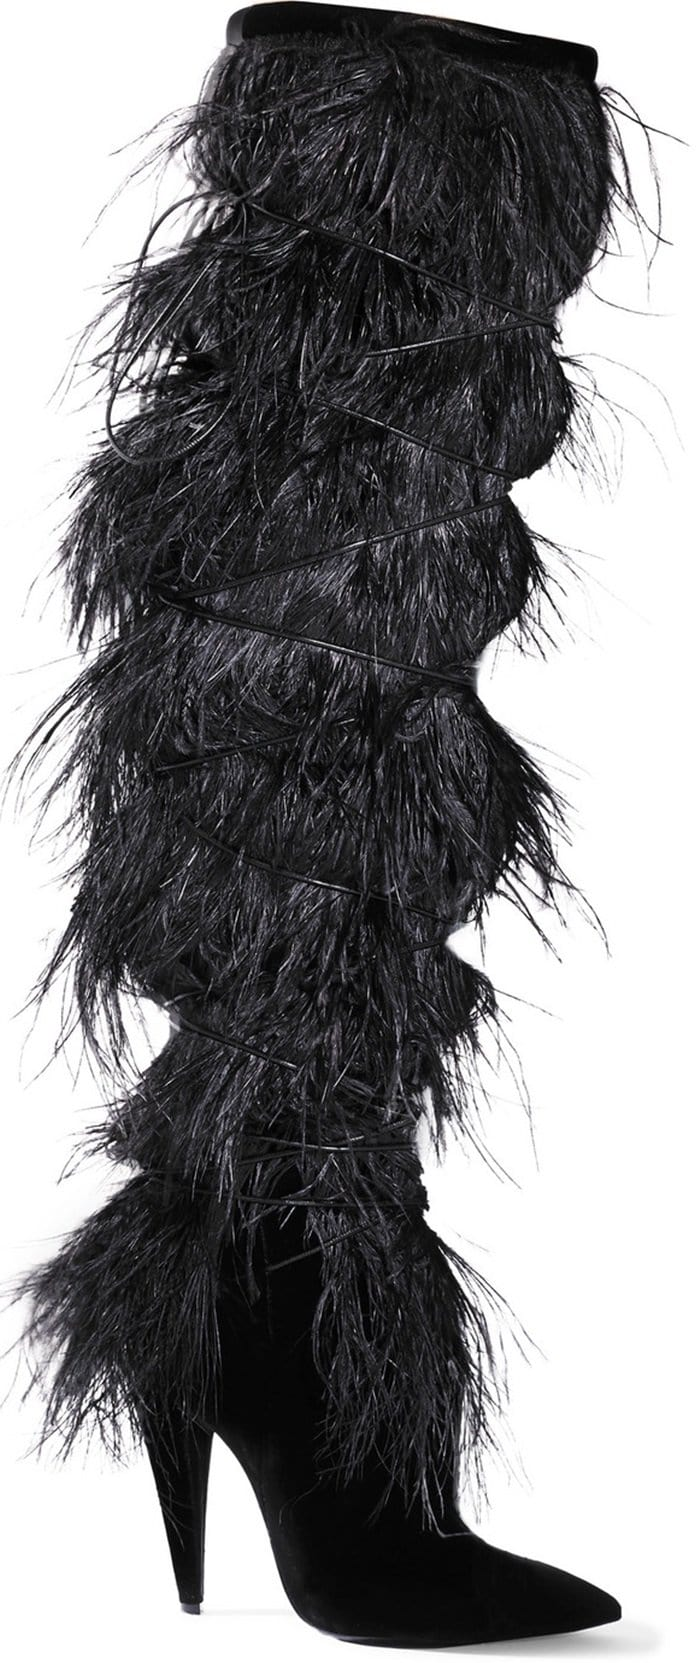 Become theAbominable Snowman in Saint Laurent's 'Yeti' feather-trimmed suede over-the-knee boots